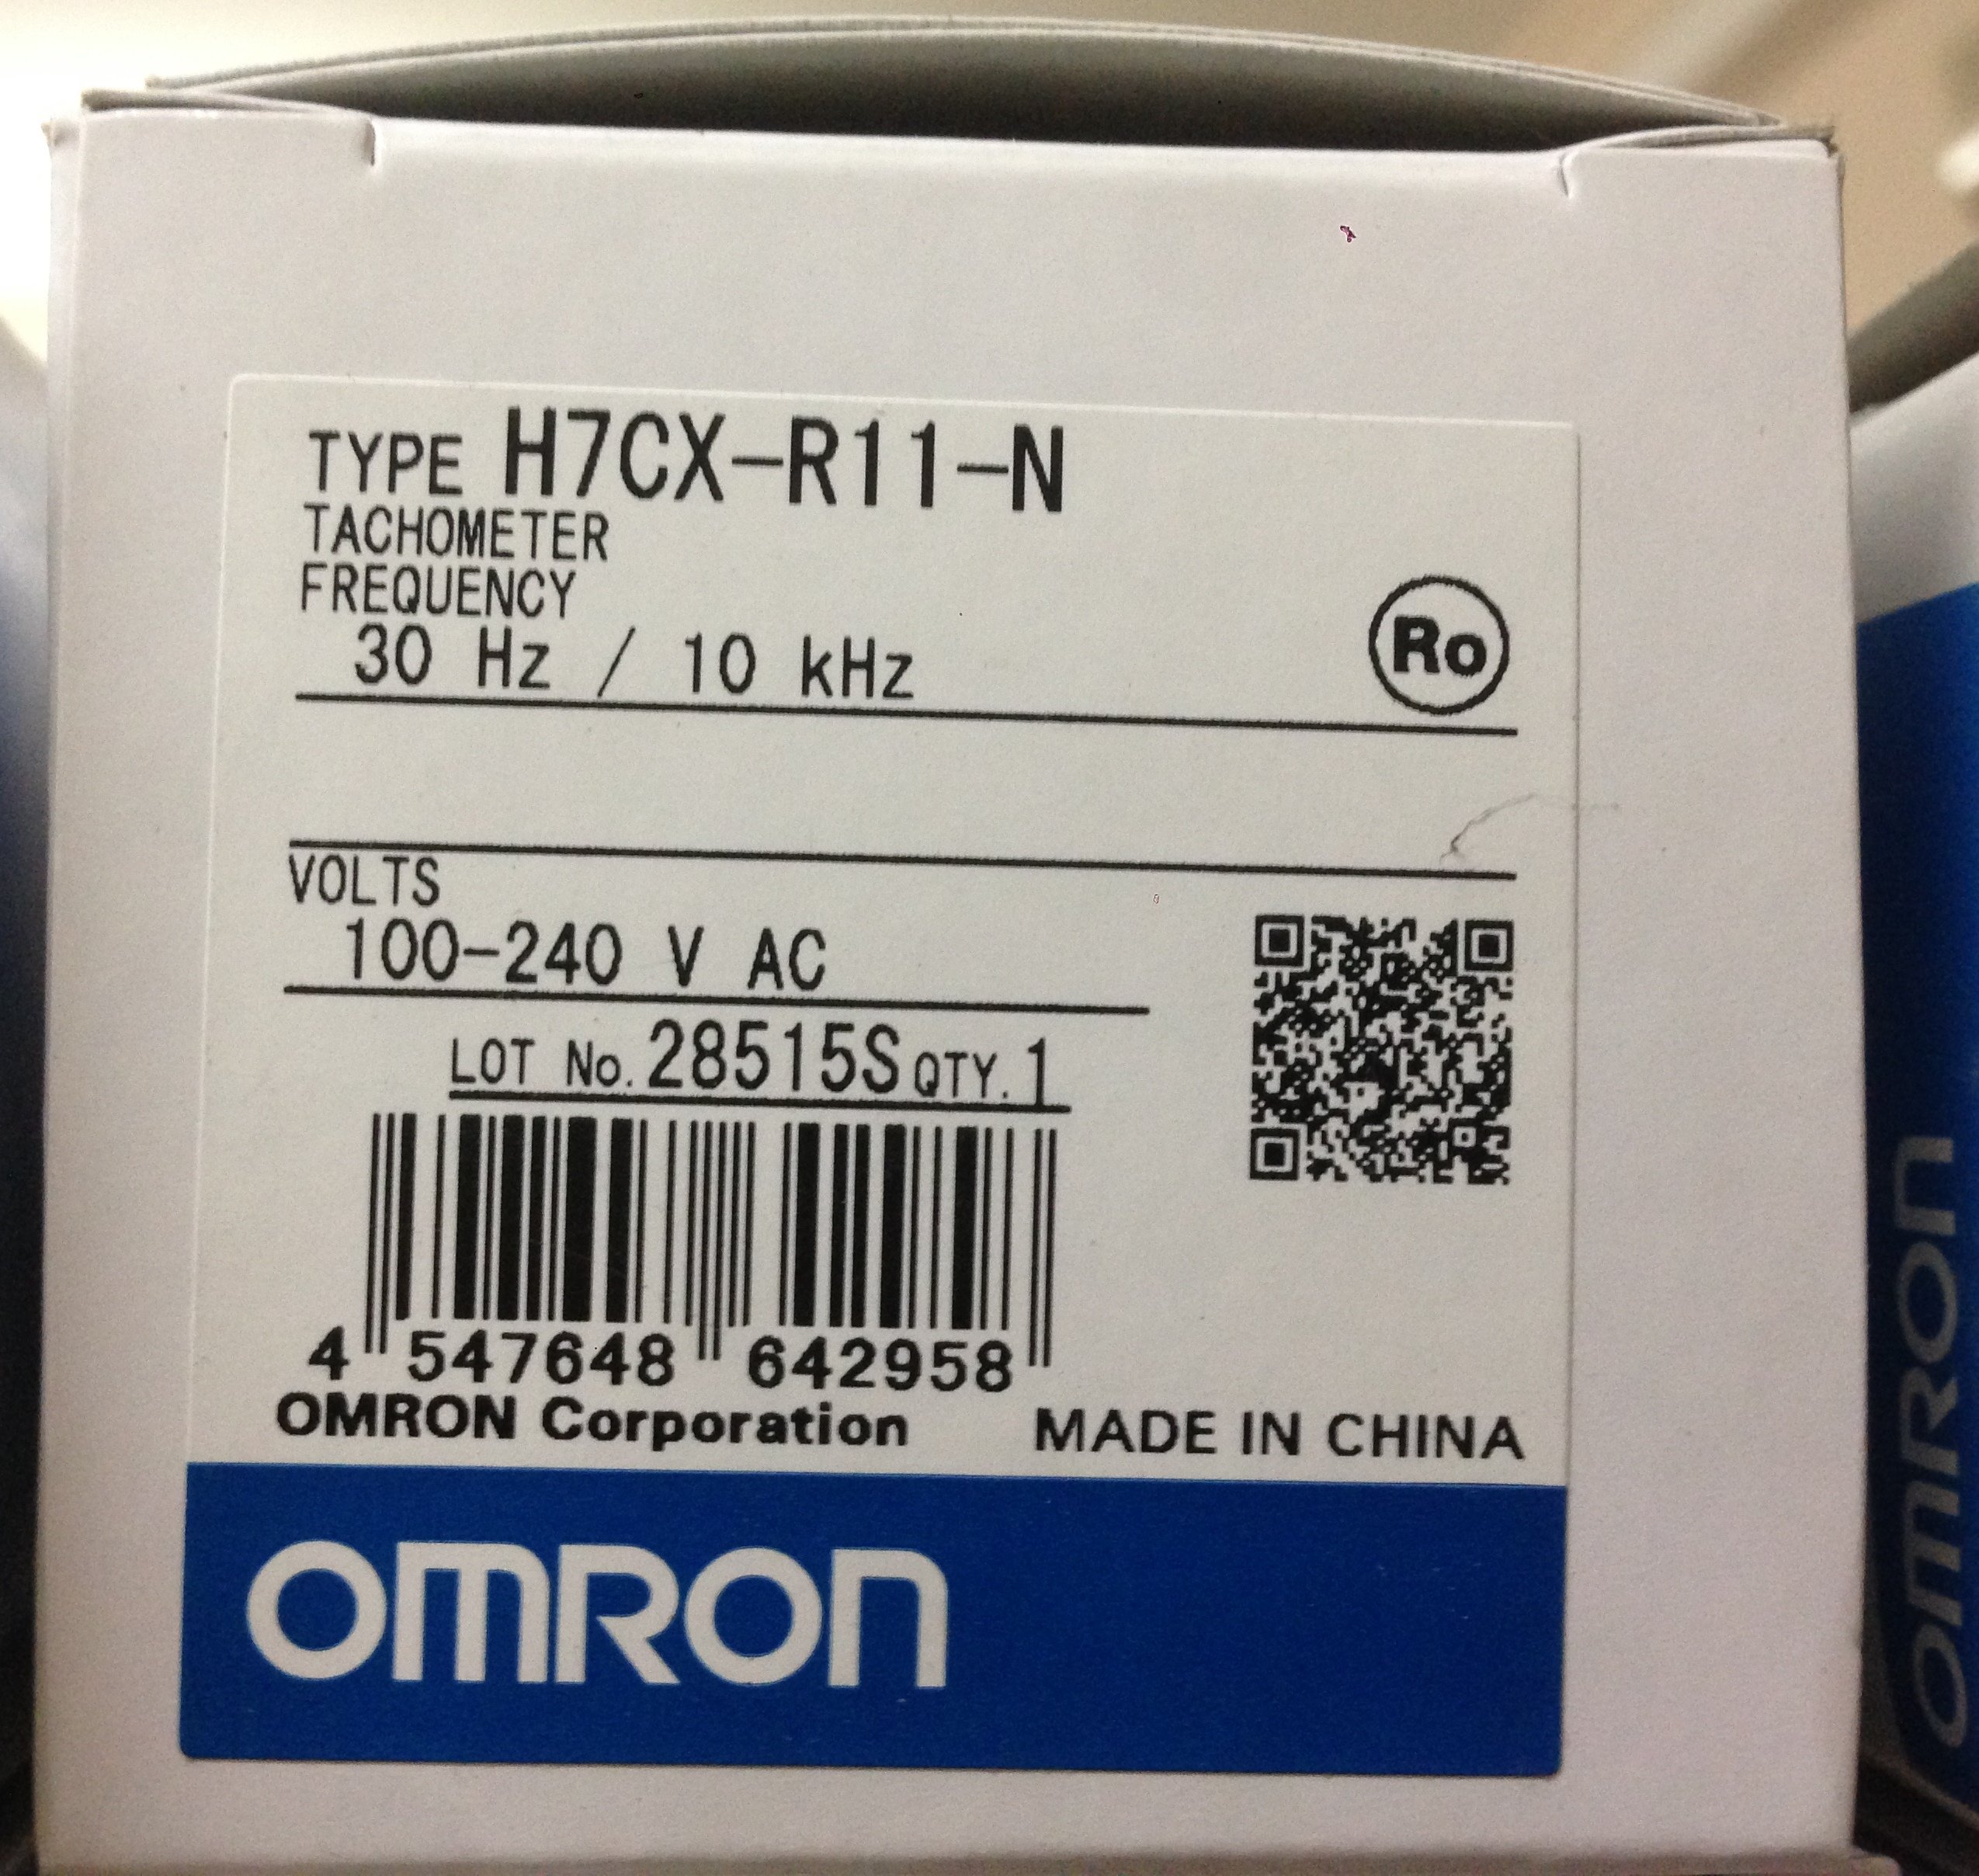 Omron H7CX-R11-N Tachometer (Puse Frequency Meter, 30Hz / 10kHz)